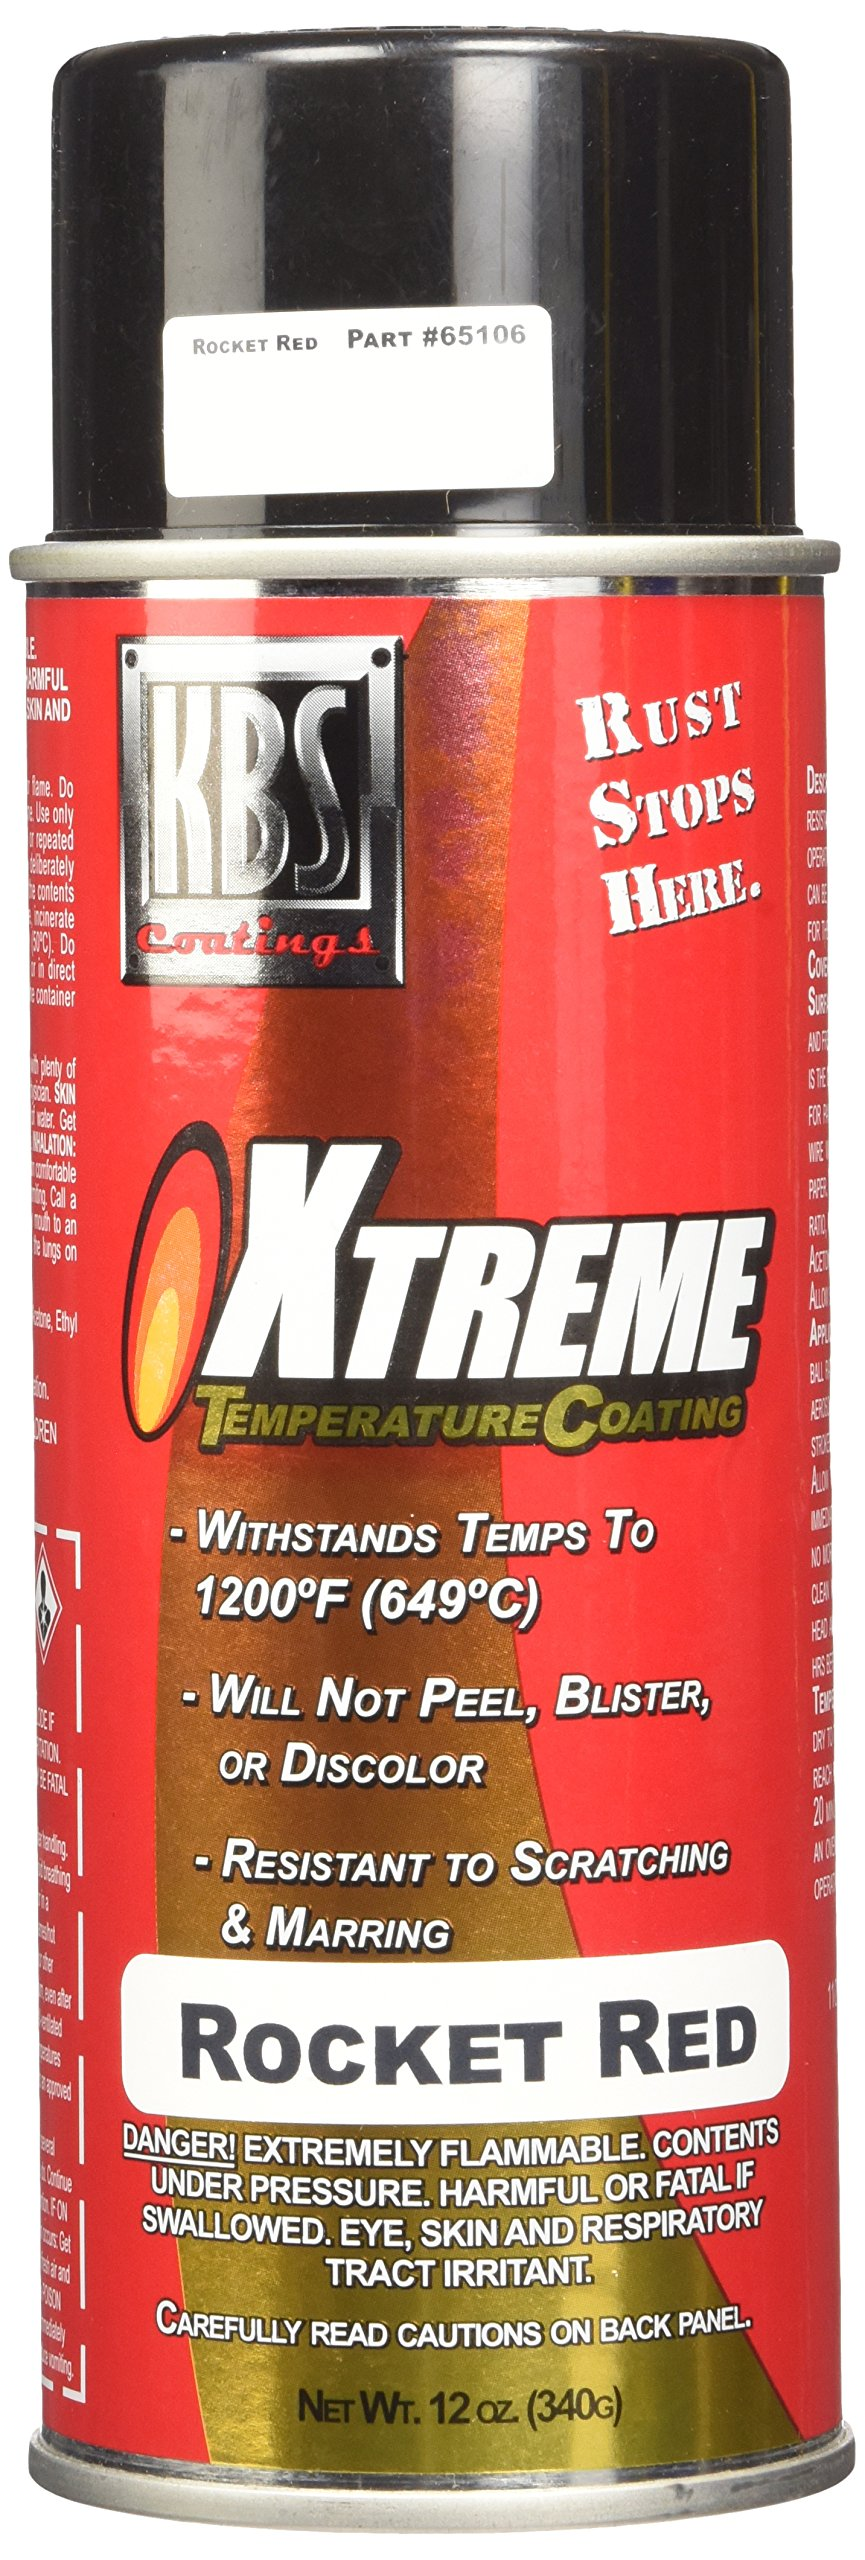 KBS Coatings 65106 Rocket Red Xtreme Temperature Coating - 12 fl. oz.